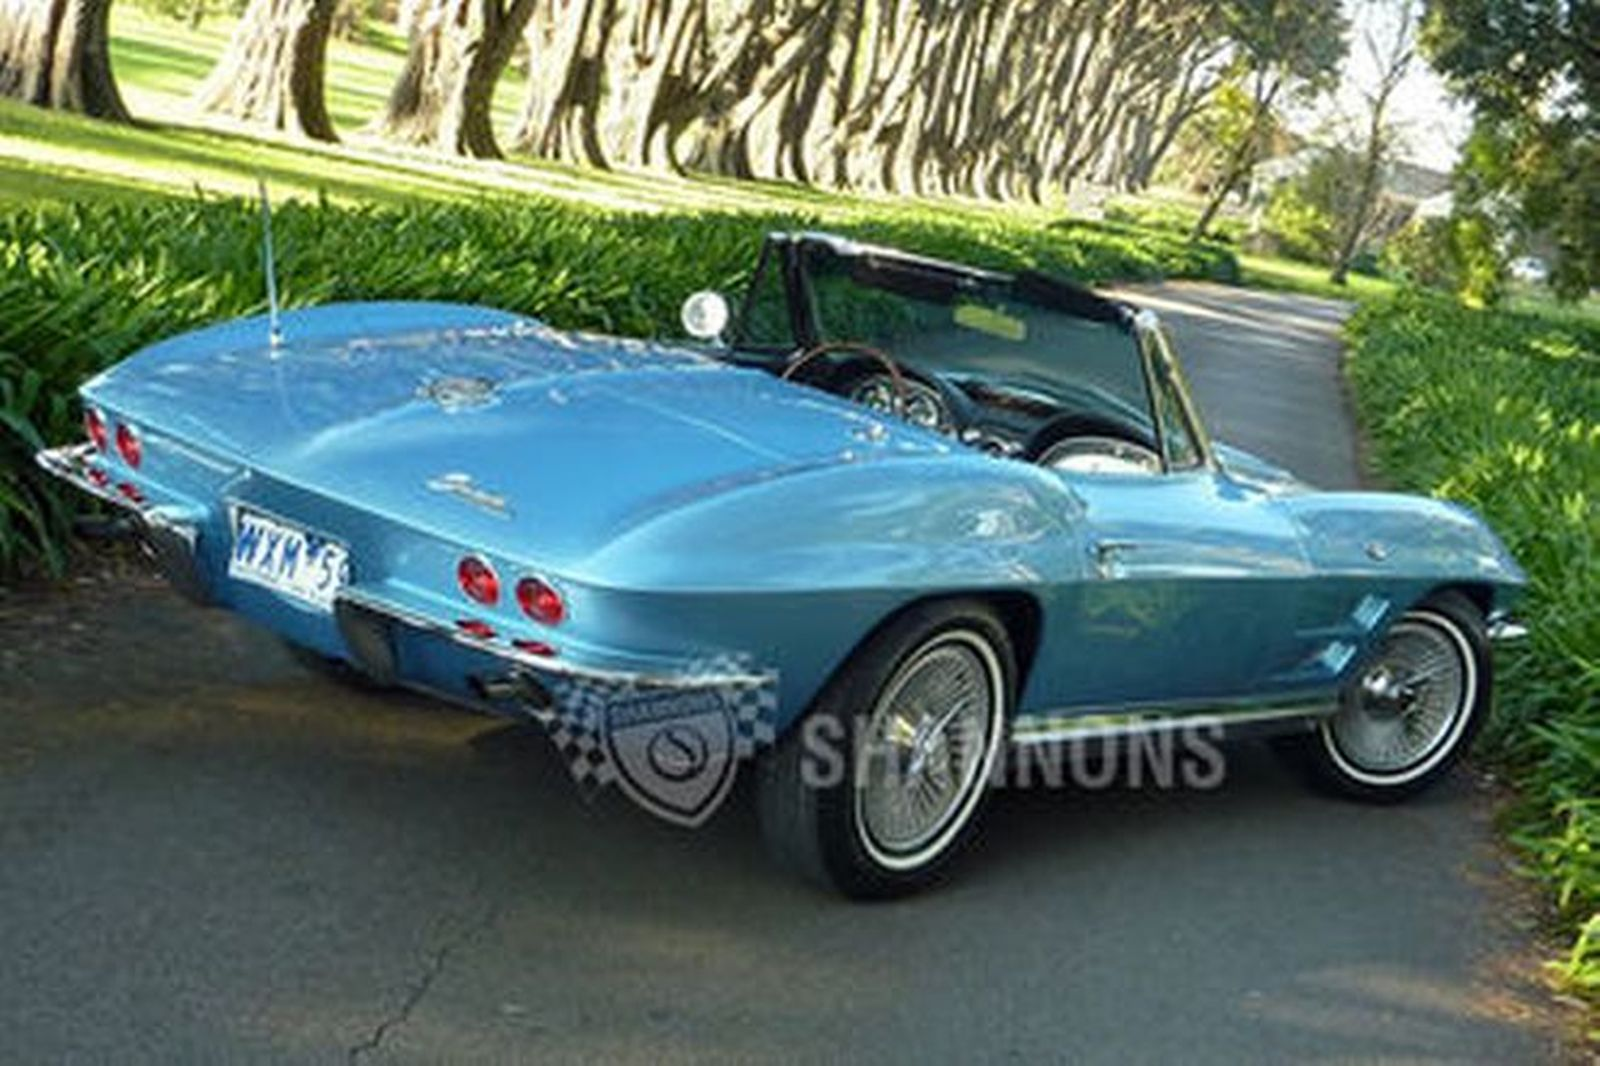 Chevrolet Corvette Stingray Convertible (LHD)